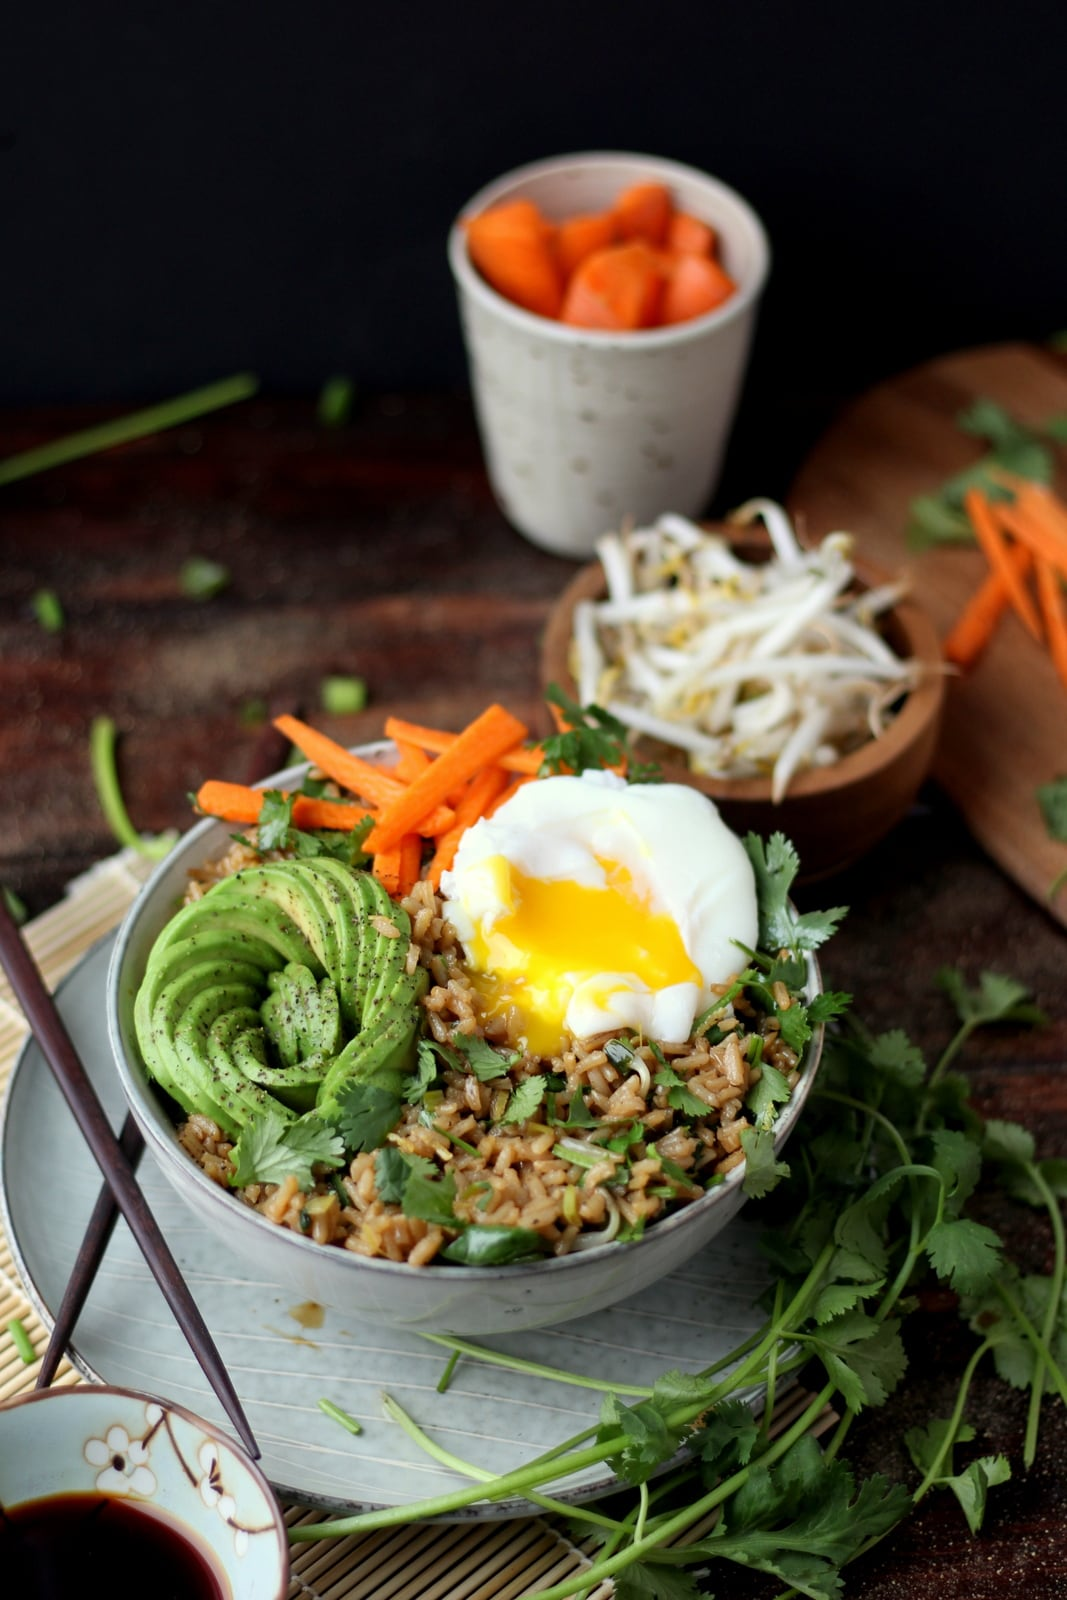 Cilantro Fried Rice + Avocado and Poached Egg - awesome vegetarian rice bowl recipe! thewoodenskillet.com #ricebowl #foodphotography